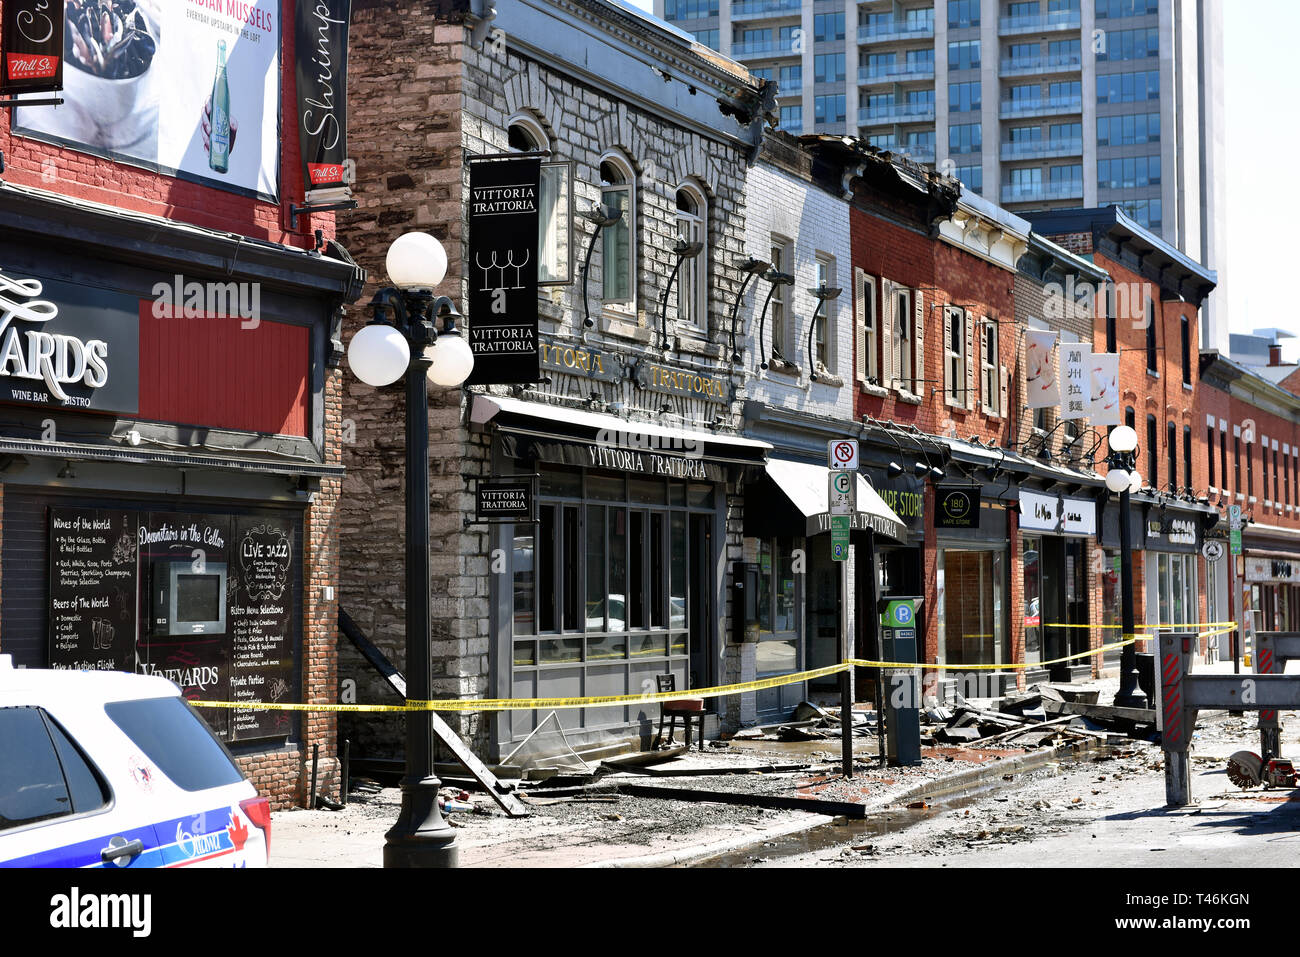 Ottawa, Canada - April 13, 2019: William Street in the Byward Market still closed after Vittoria Trattoria caught on fire and spread to other heritage - Stock Image